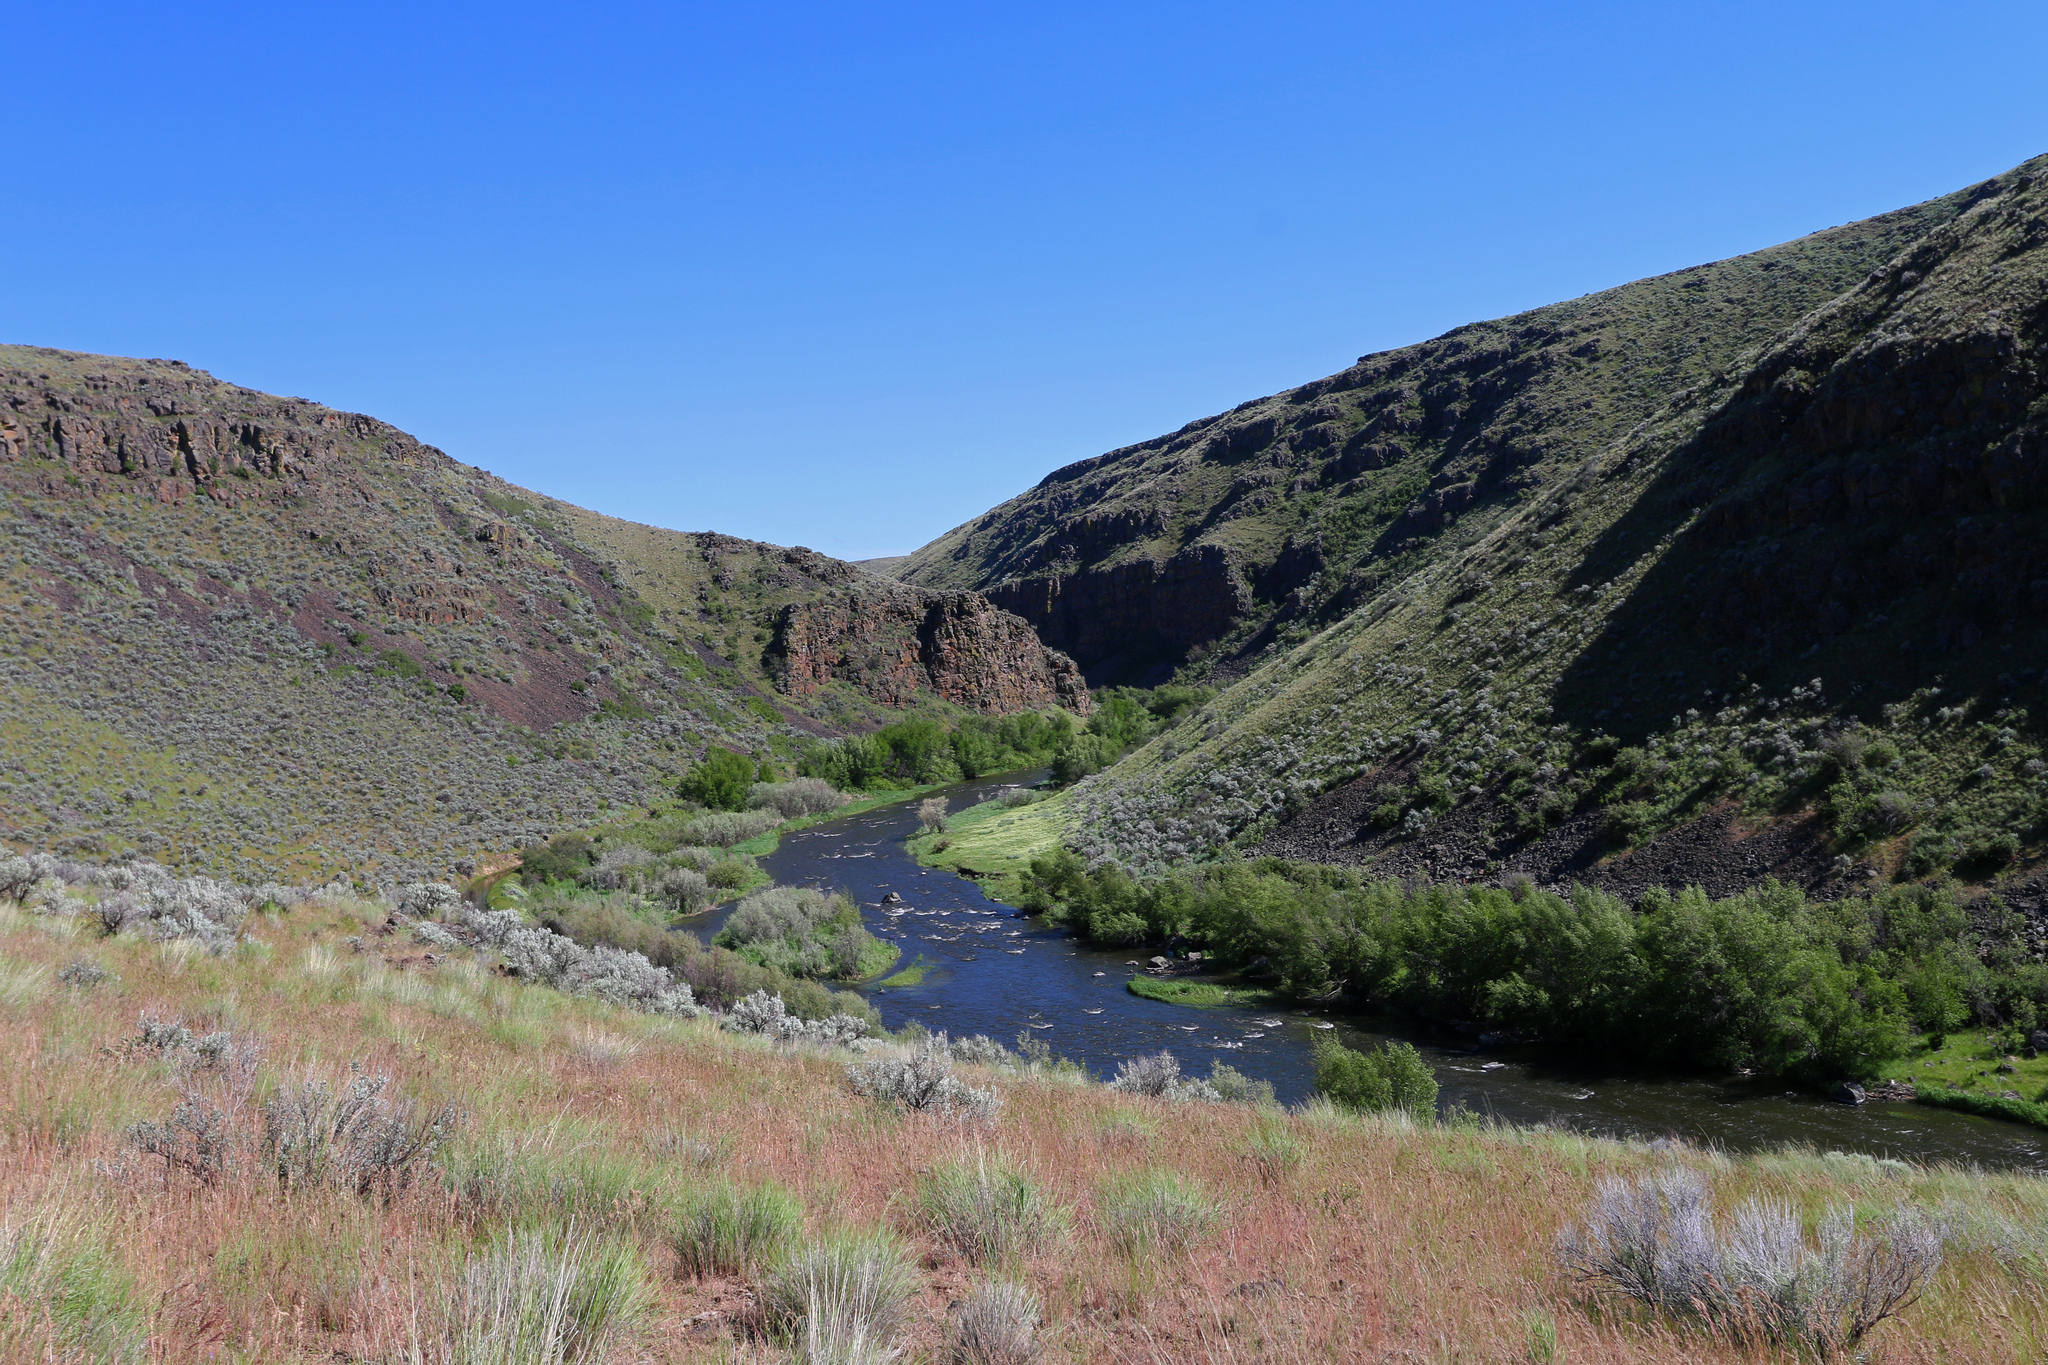 <p>The Powder River in northeastern Oregon is a tributary of the Snake River. The fishing is great, as is the hunting, although access is limited. Float boating does occur, but only in the early spring. (CC by 2.0)</p>